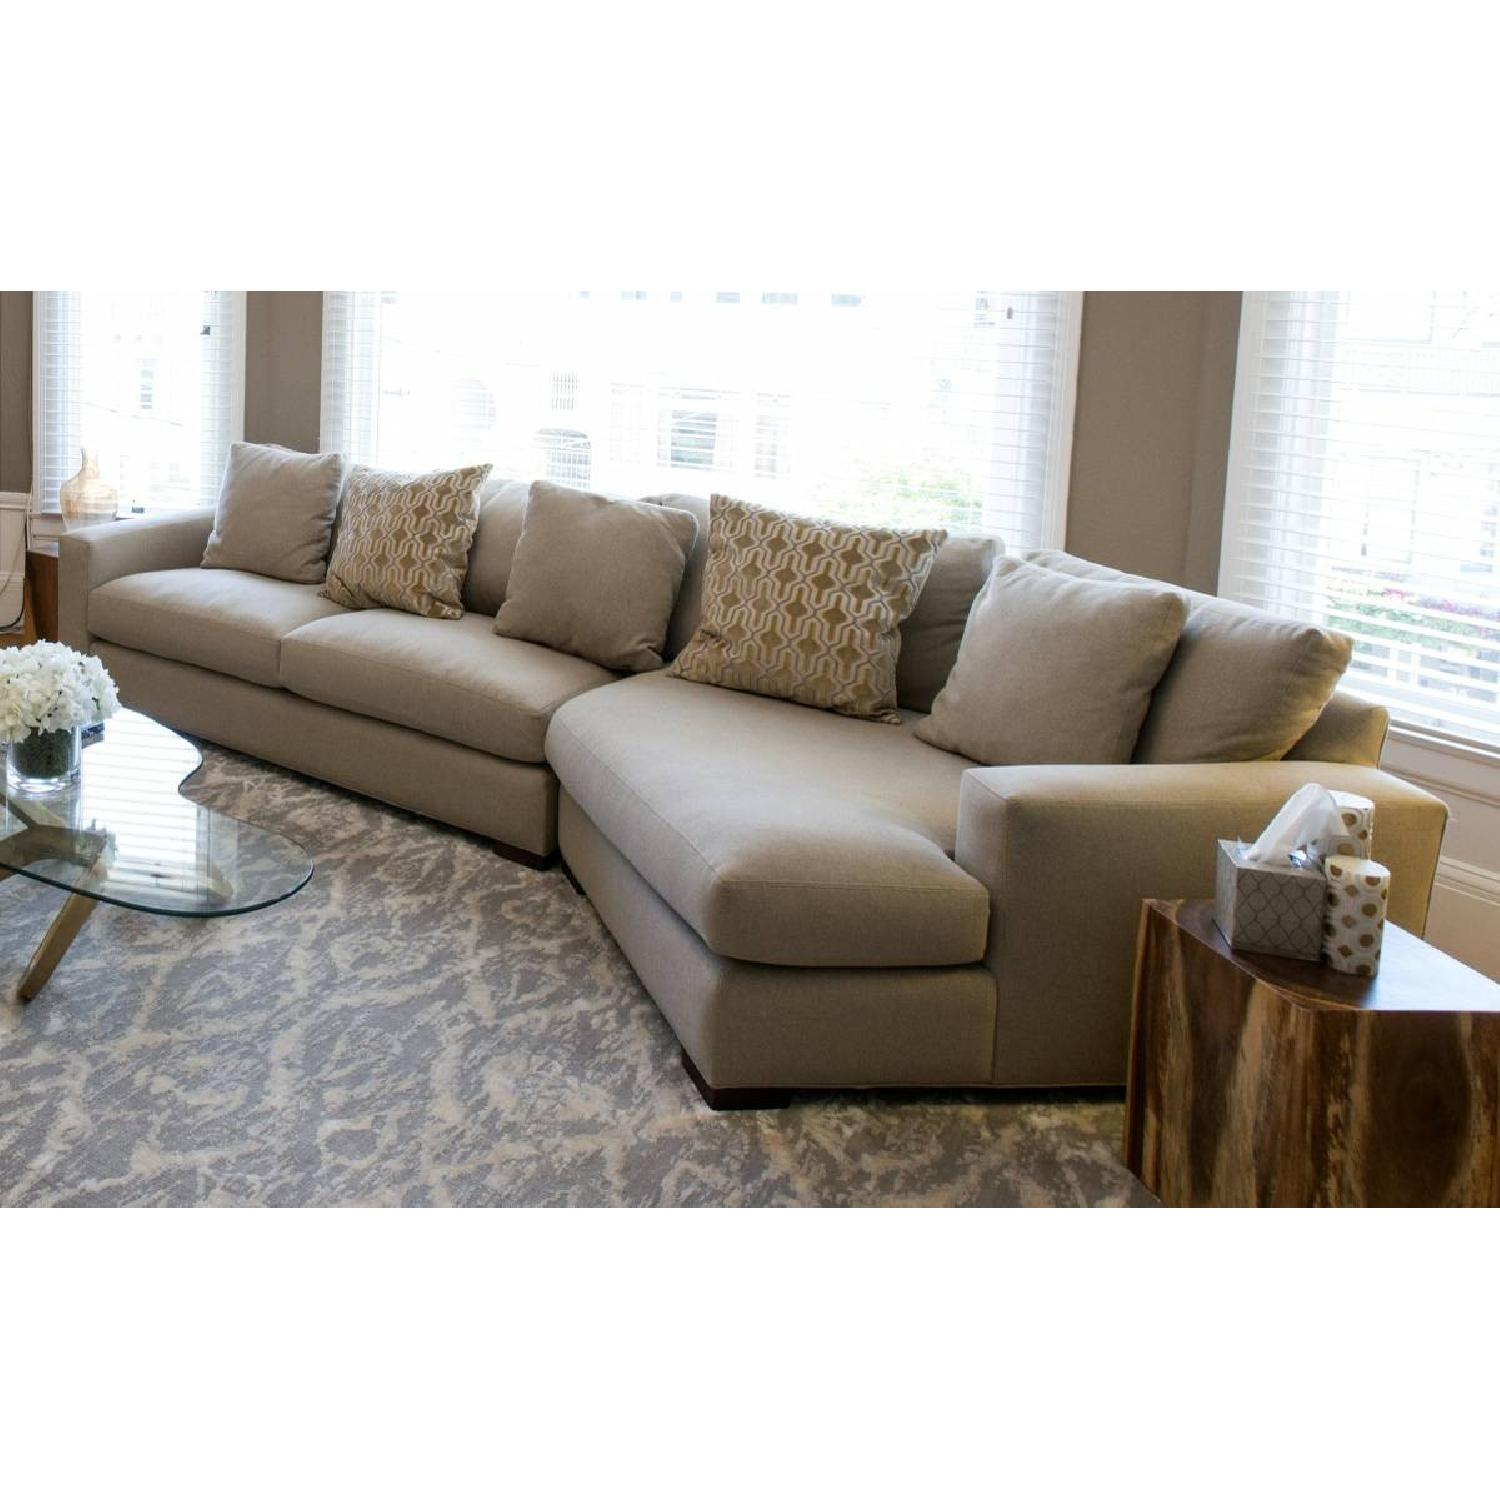 Room & Board Metro Sectional Sofa - image-1